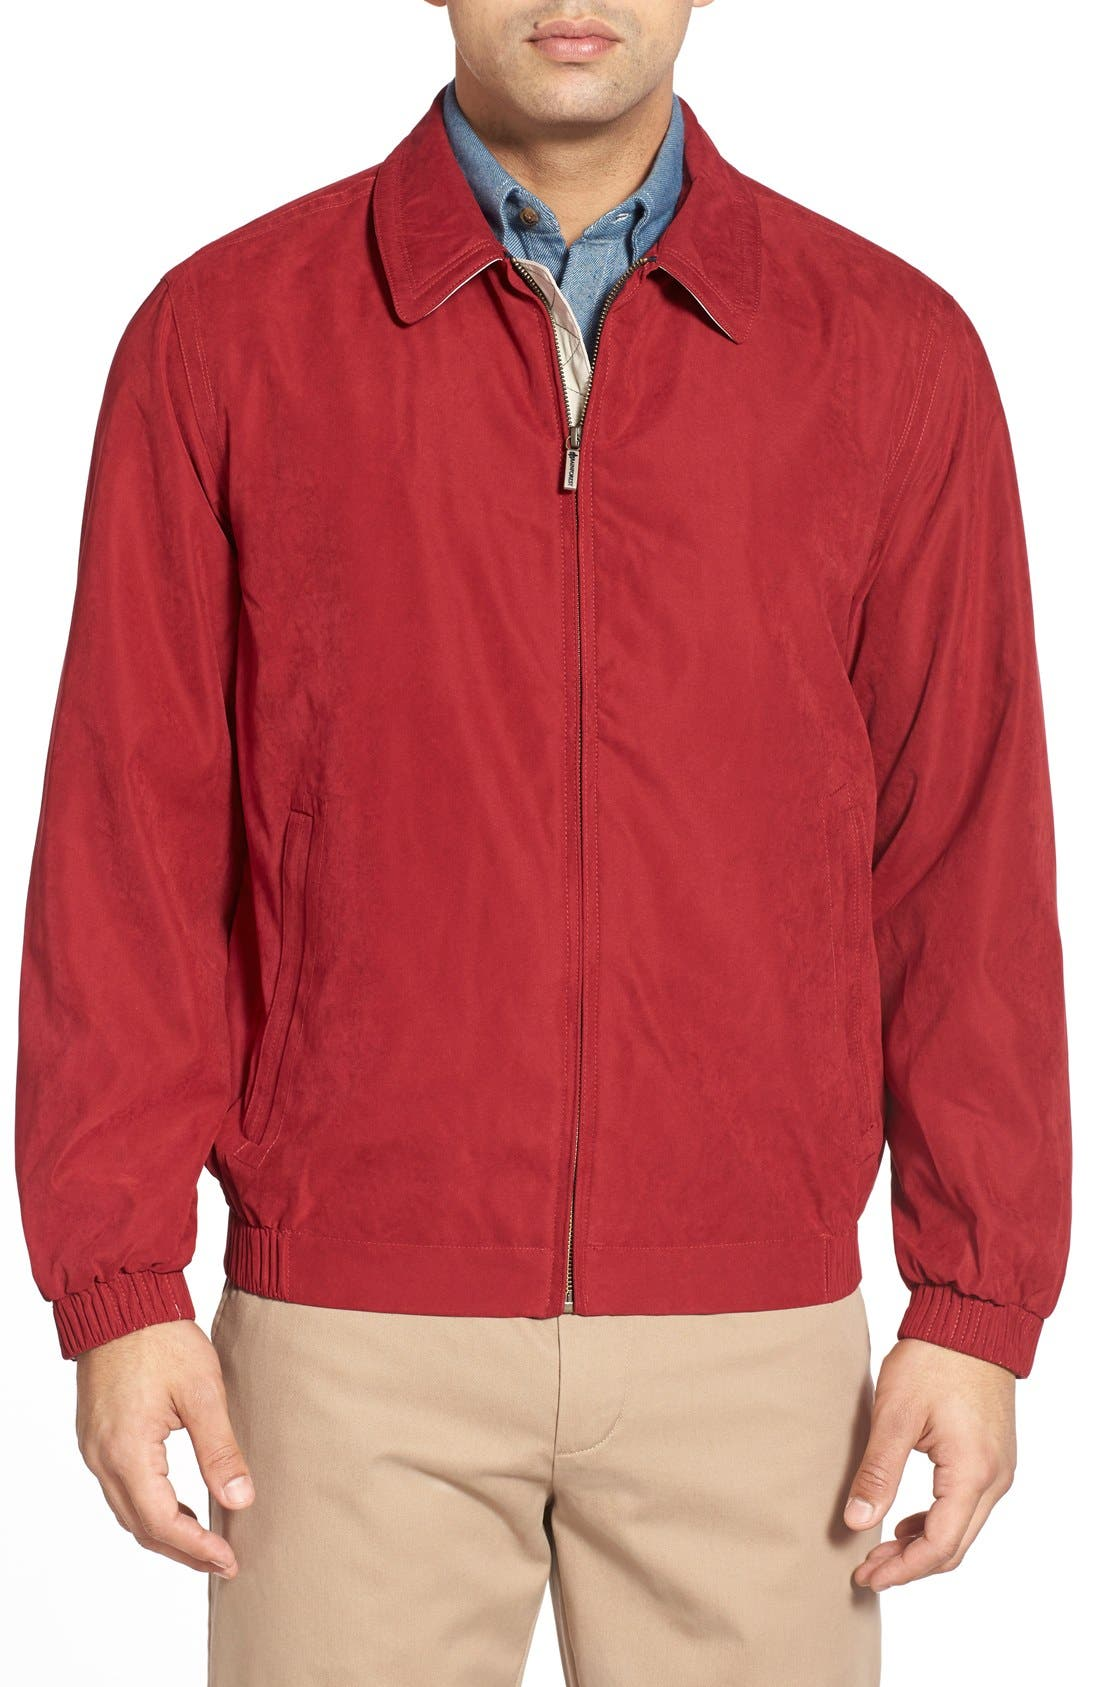 'Microseta' Lightweight Golf Jacket,                             Main thumbnail 9, color,